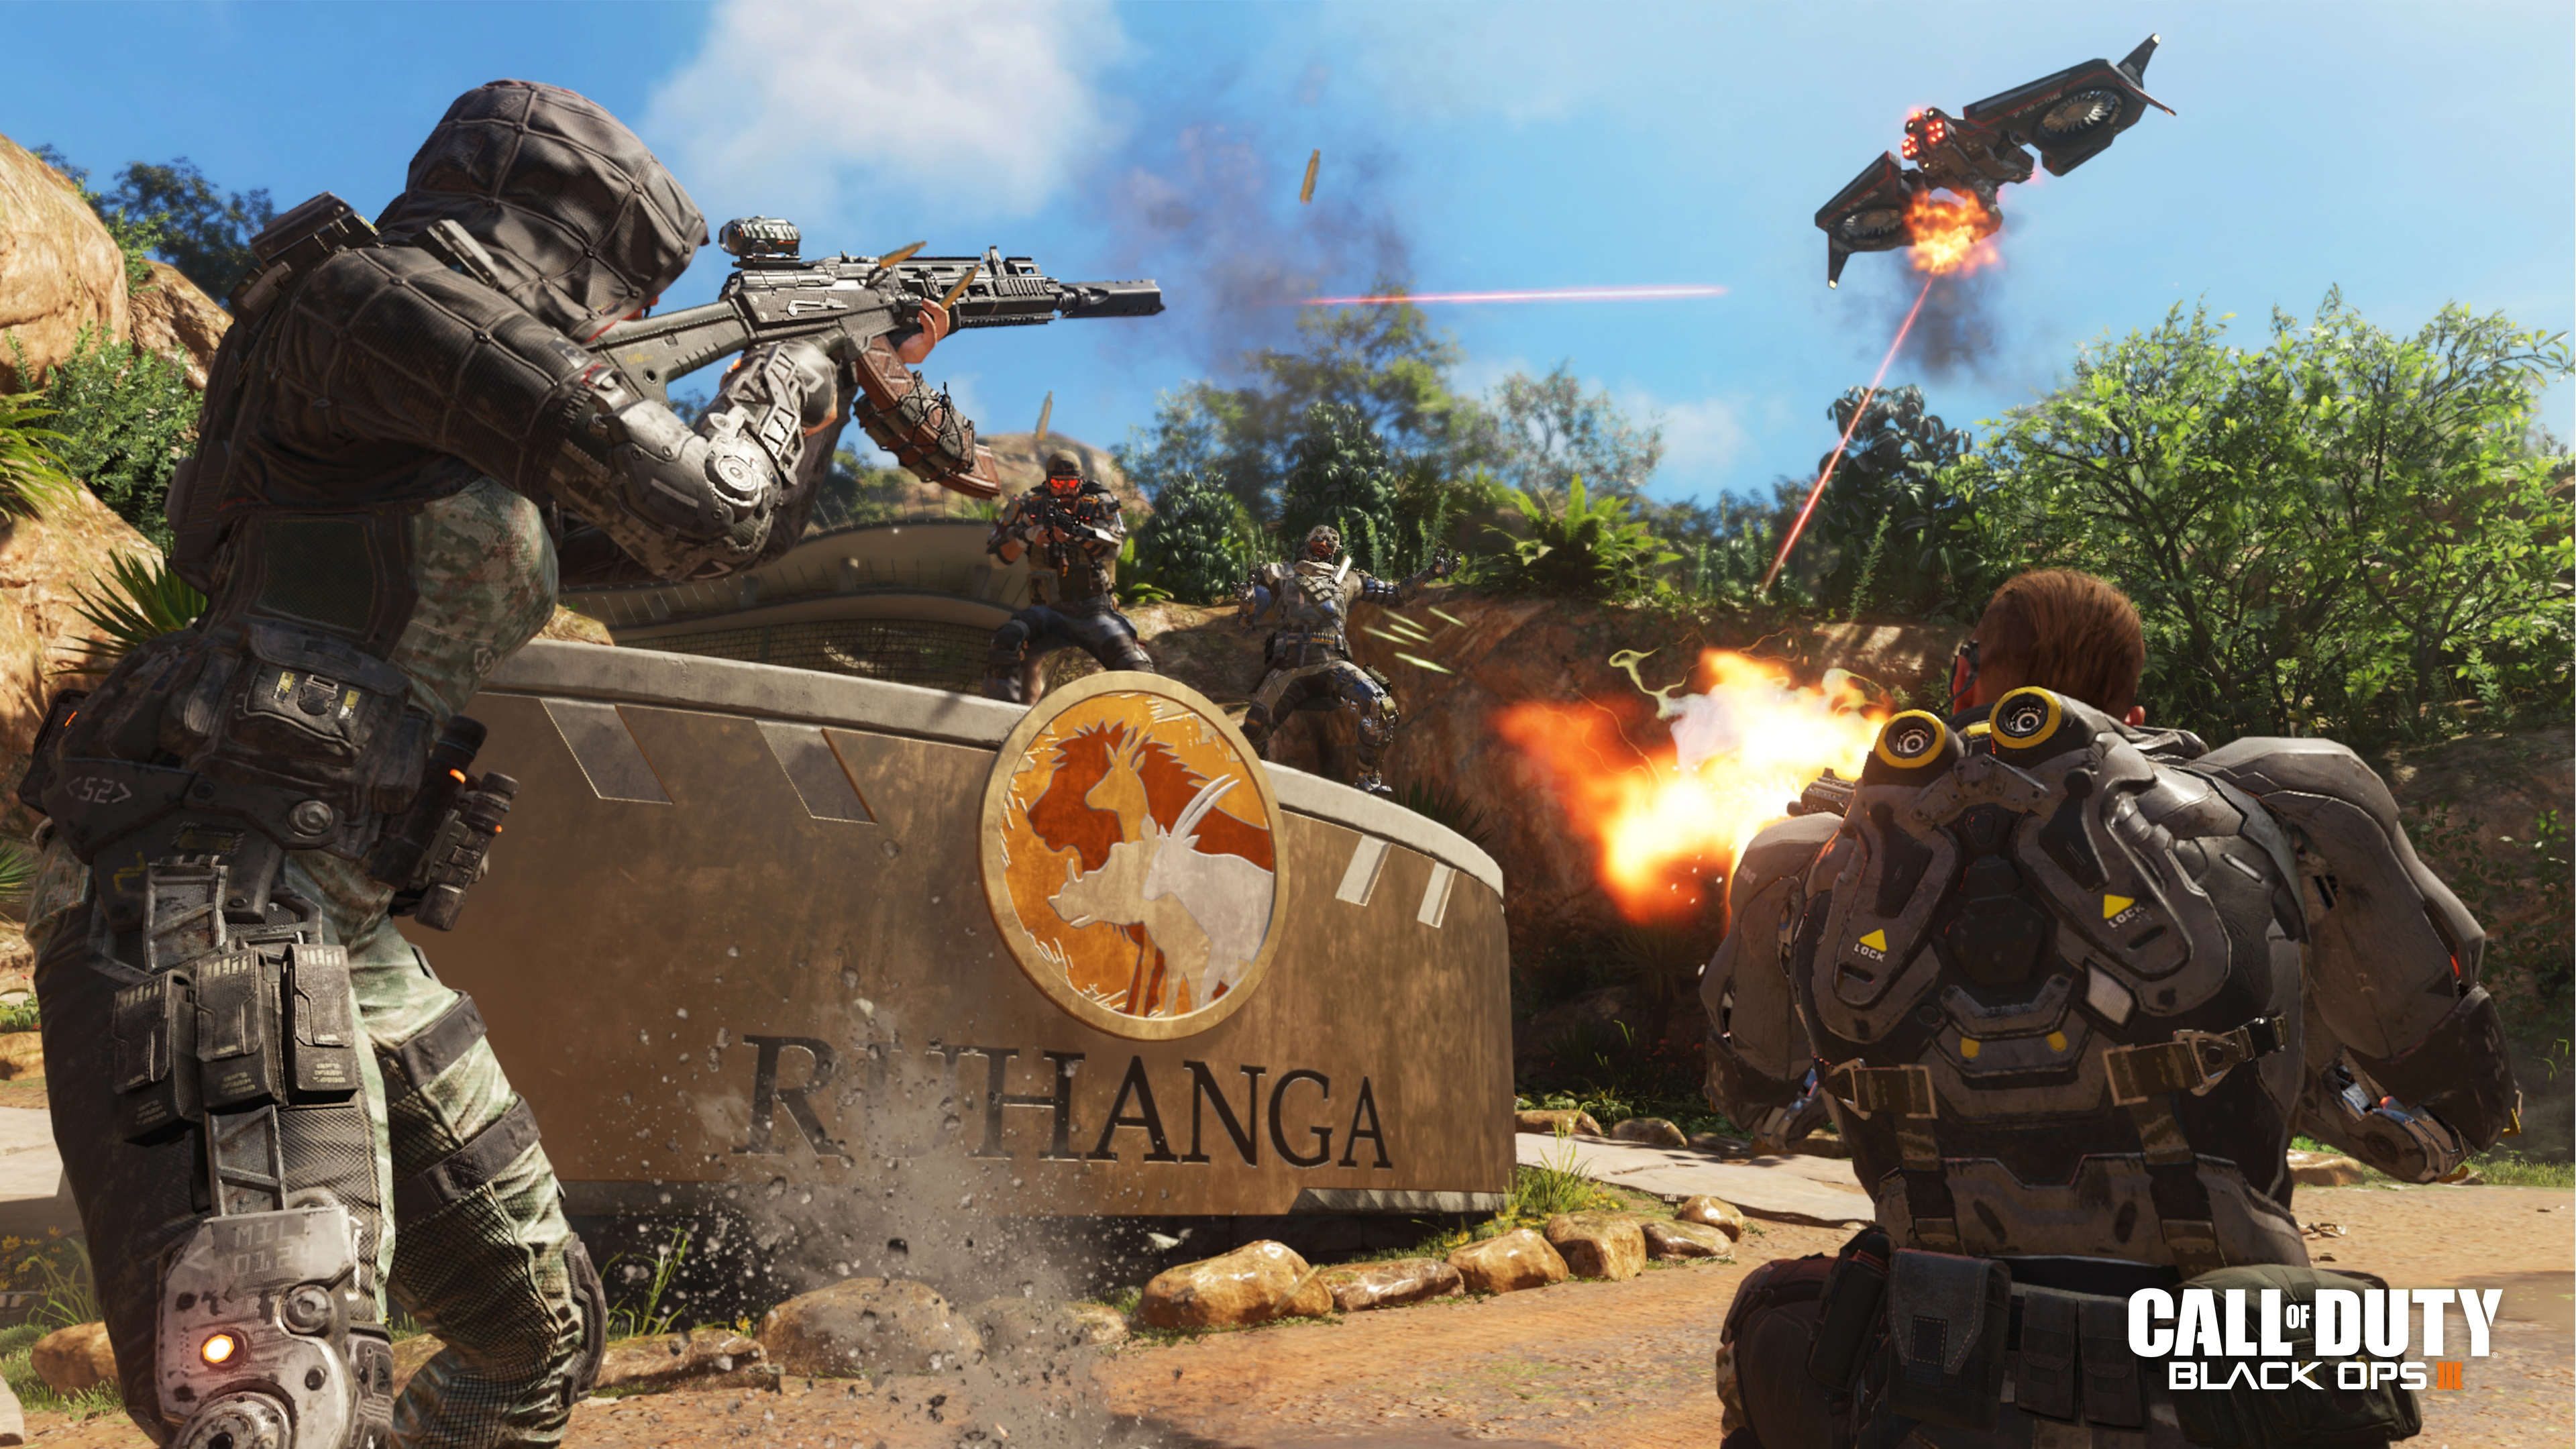 Call of Duty Black Ops 3 HD wallpapers download 3840x2160